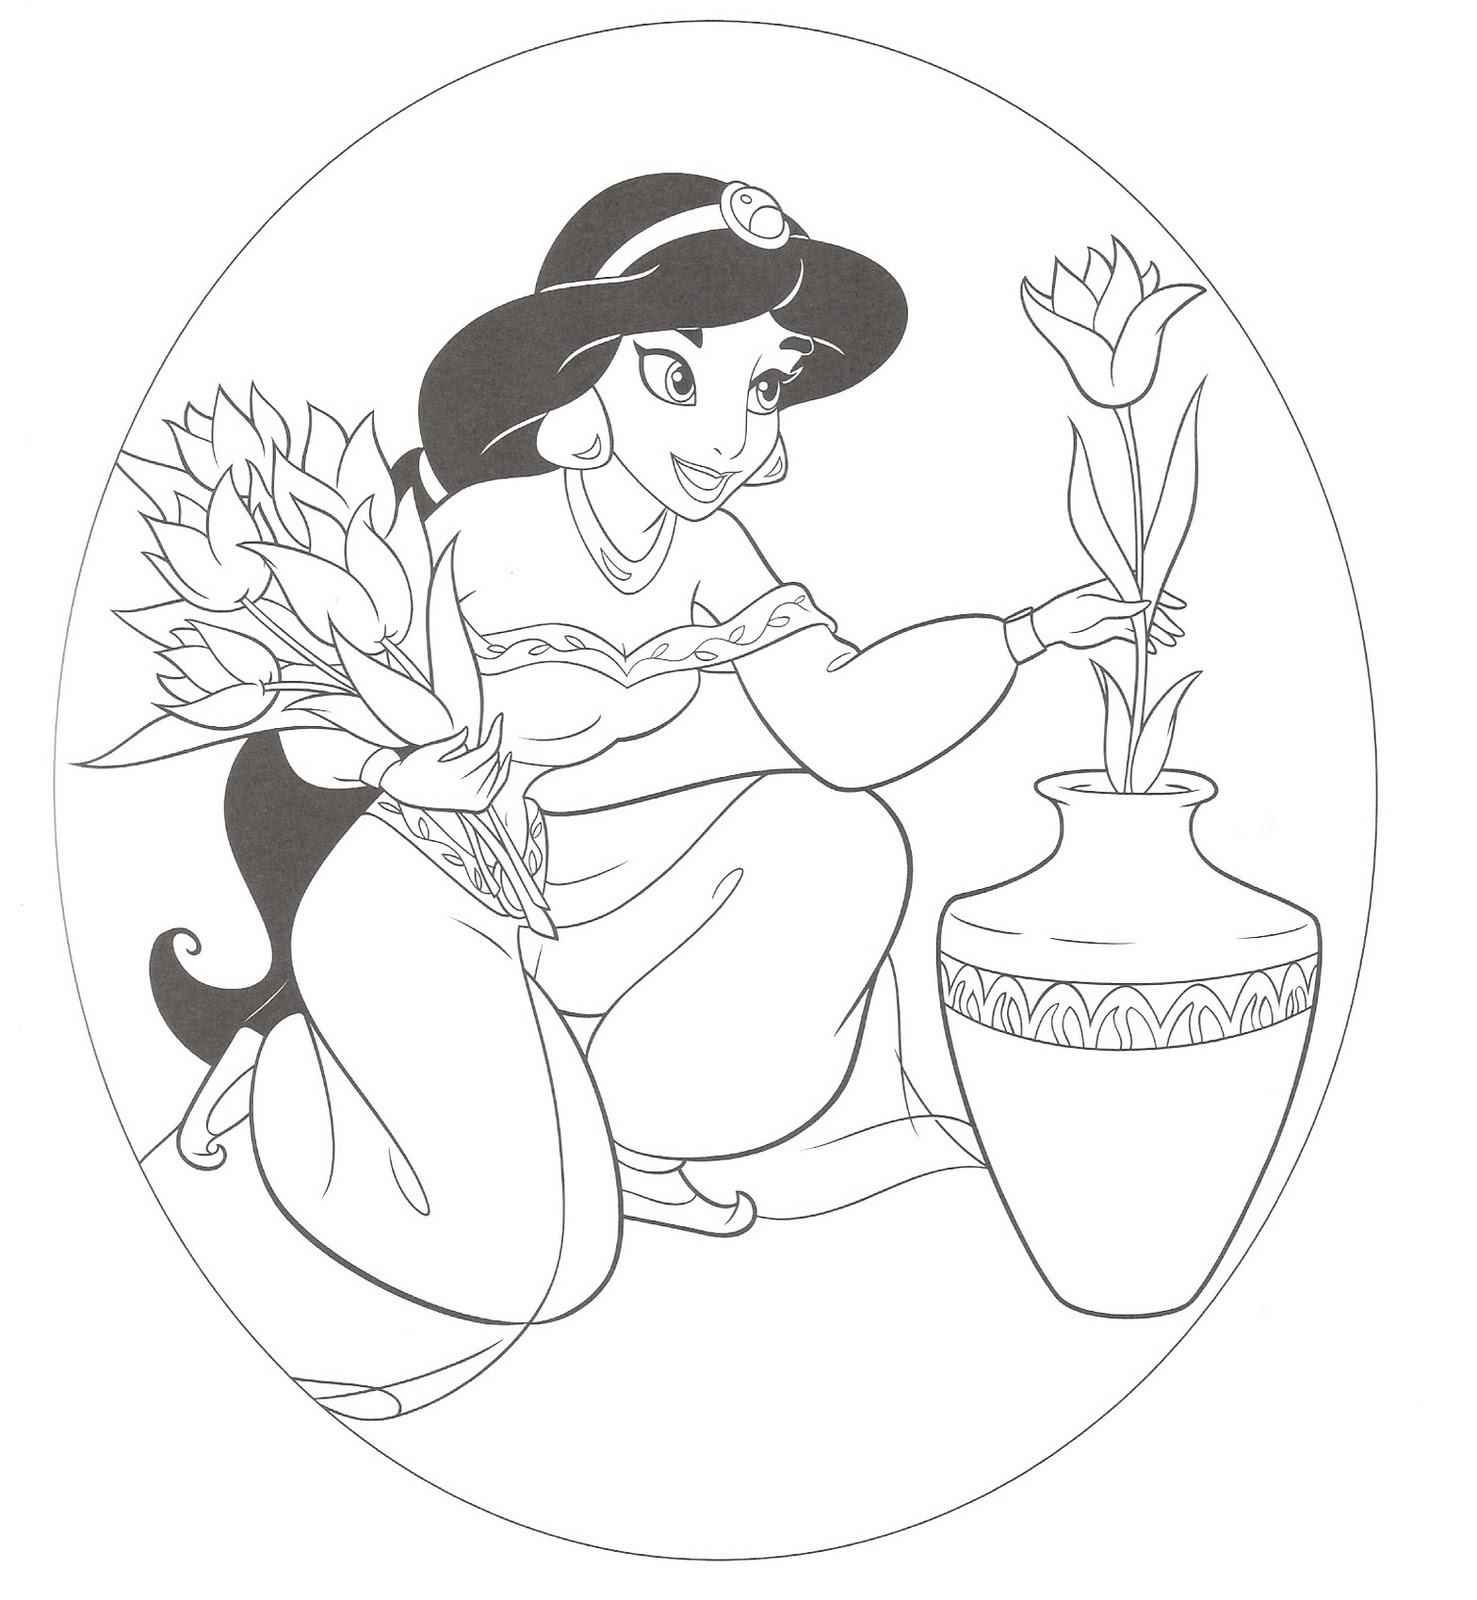 Disney Princess Coloring Pages For Kids Princess Images To Color Free Coloring Pages